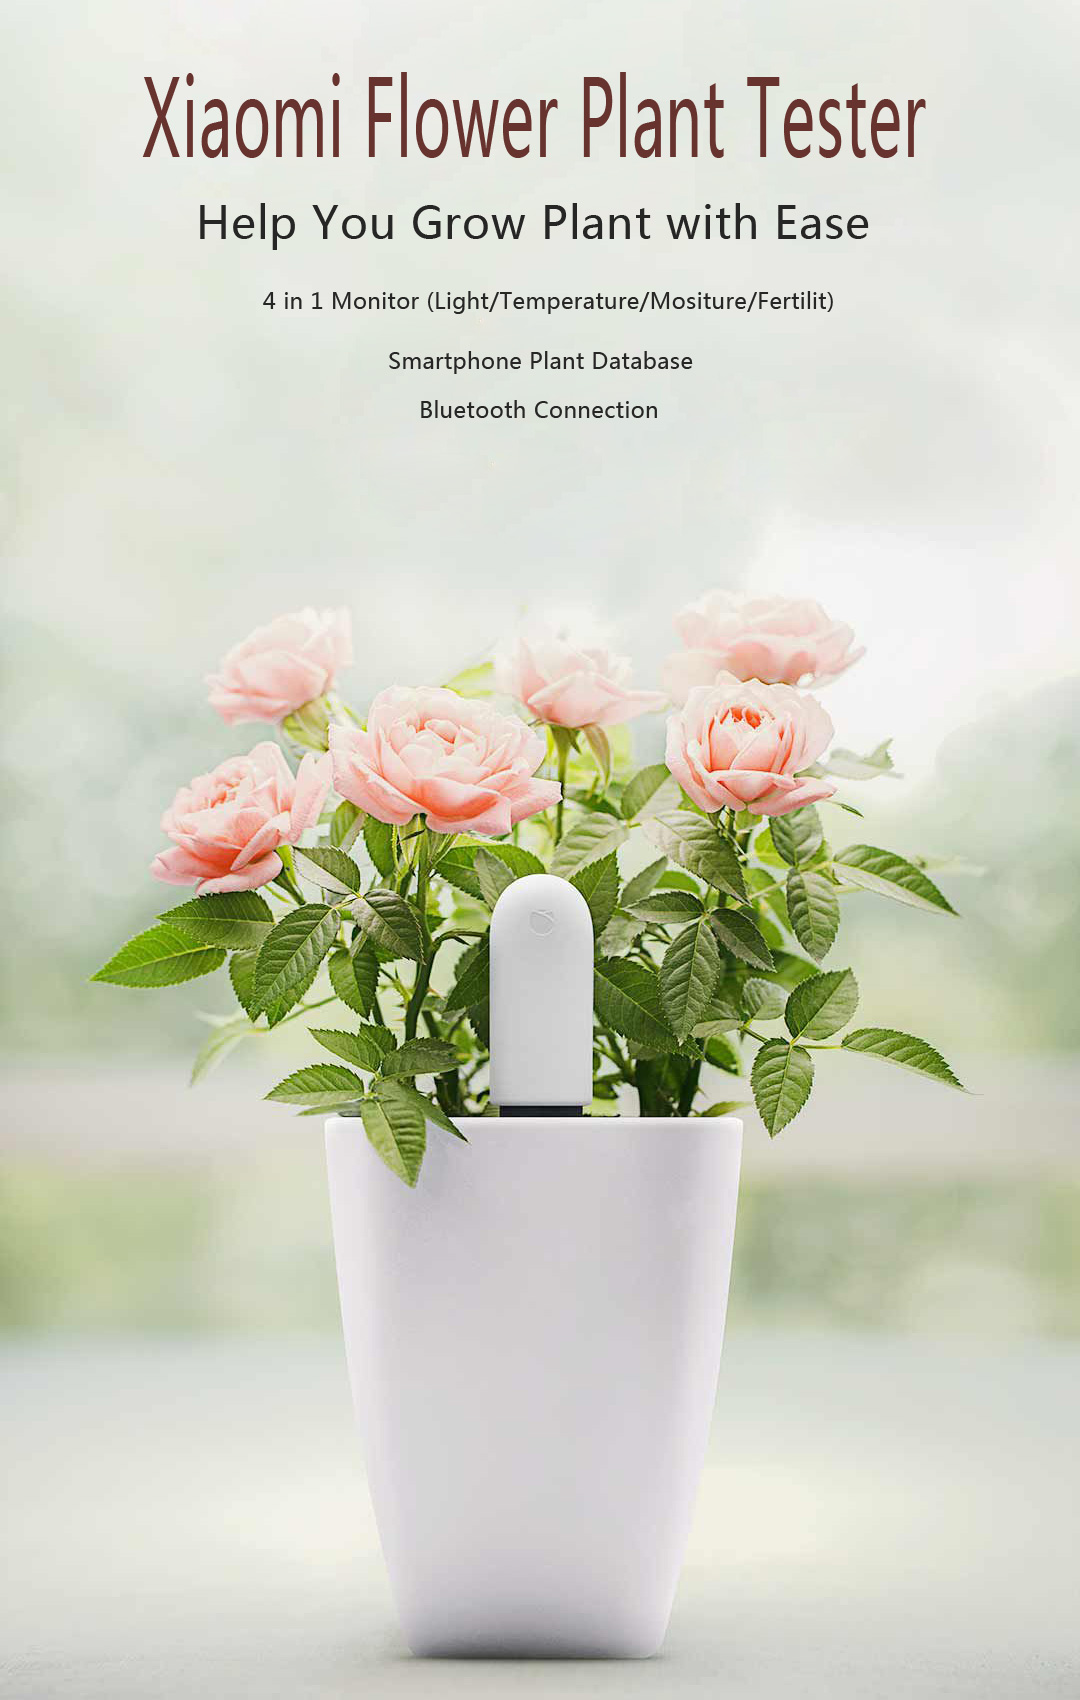 Original Xiaomi 4 in 1 Plant flower Tester